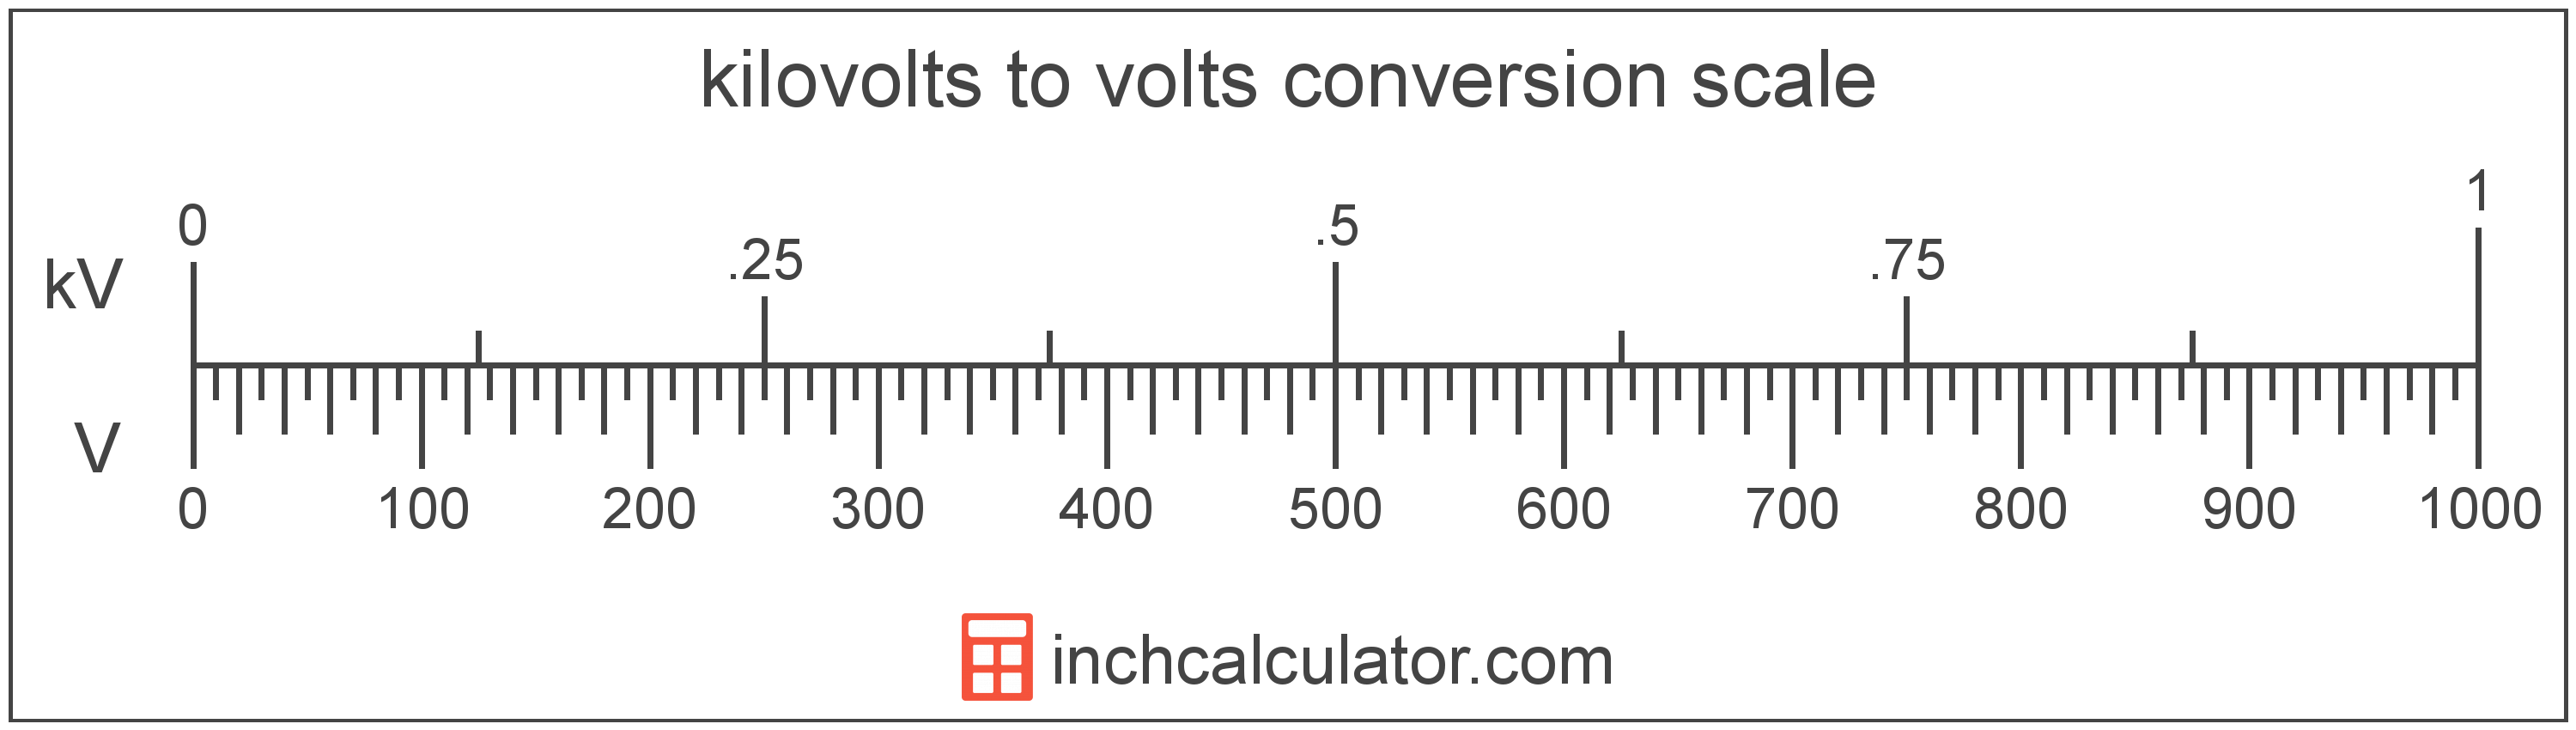 conversion scale showing kilovolts and equivalent volts voltage values